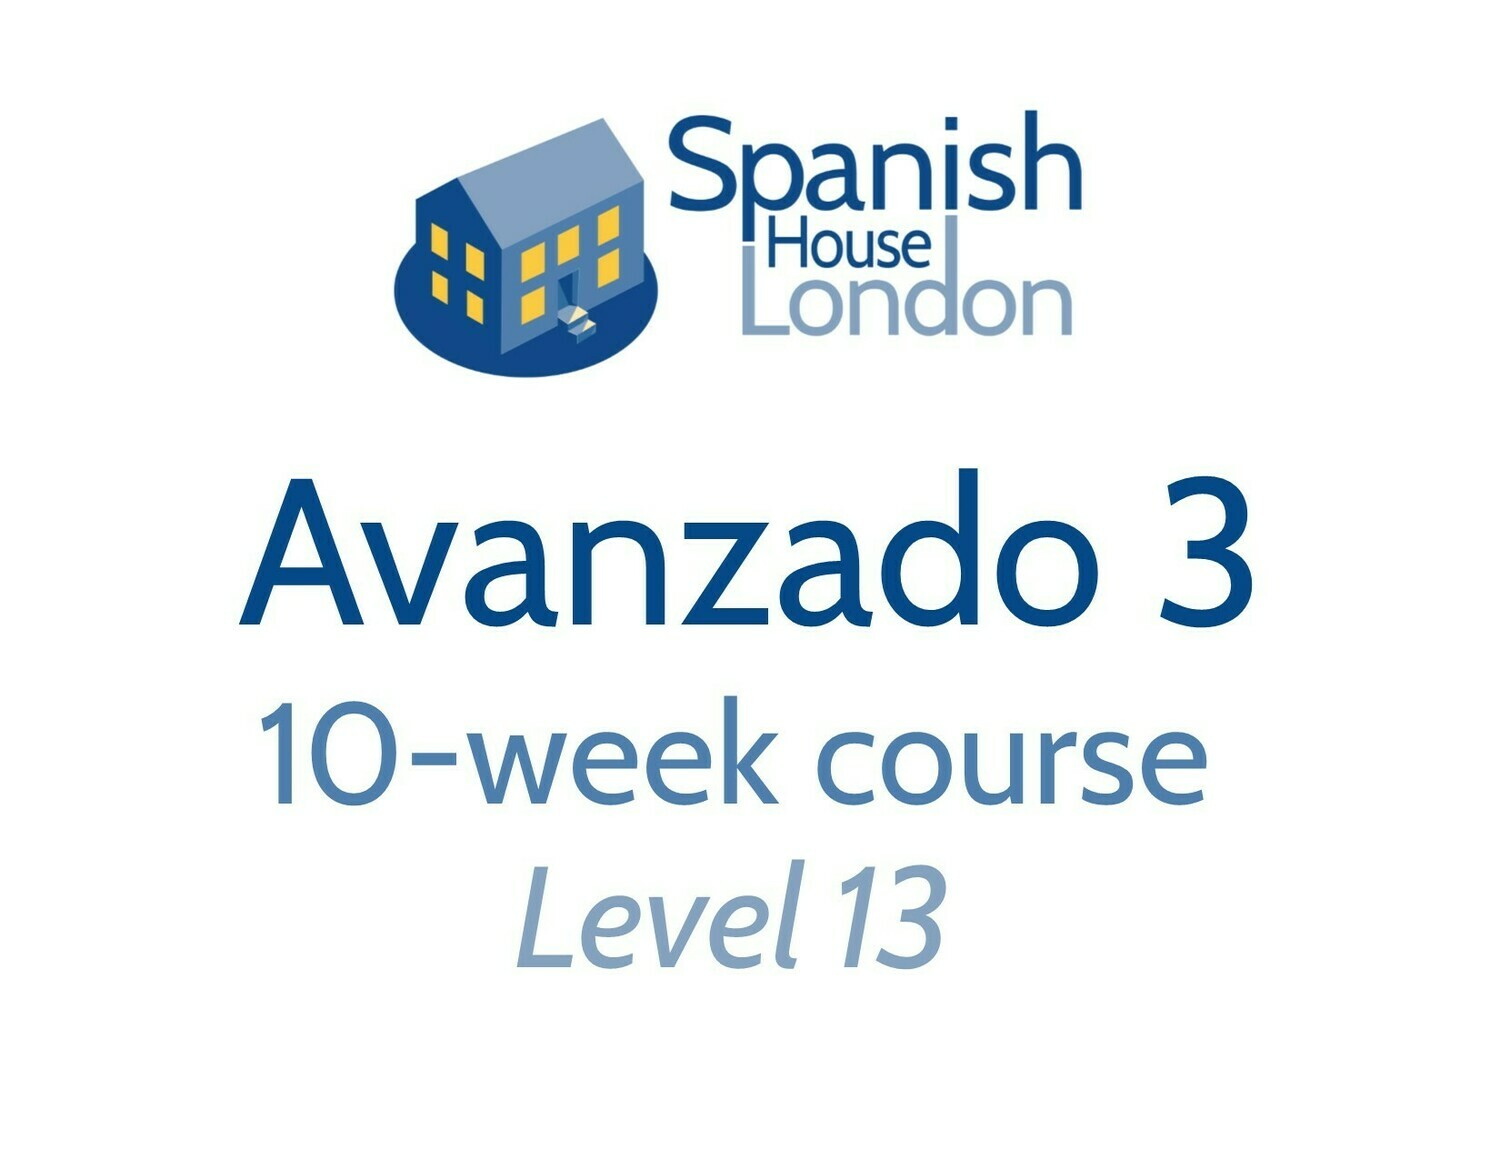 Avanzado 3 Course starting on 2nd September at 7.30pm in Euston